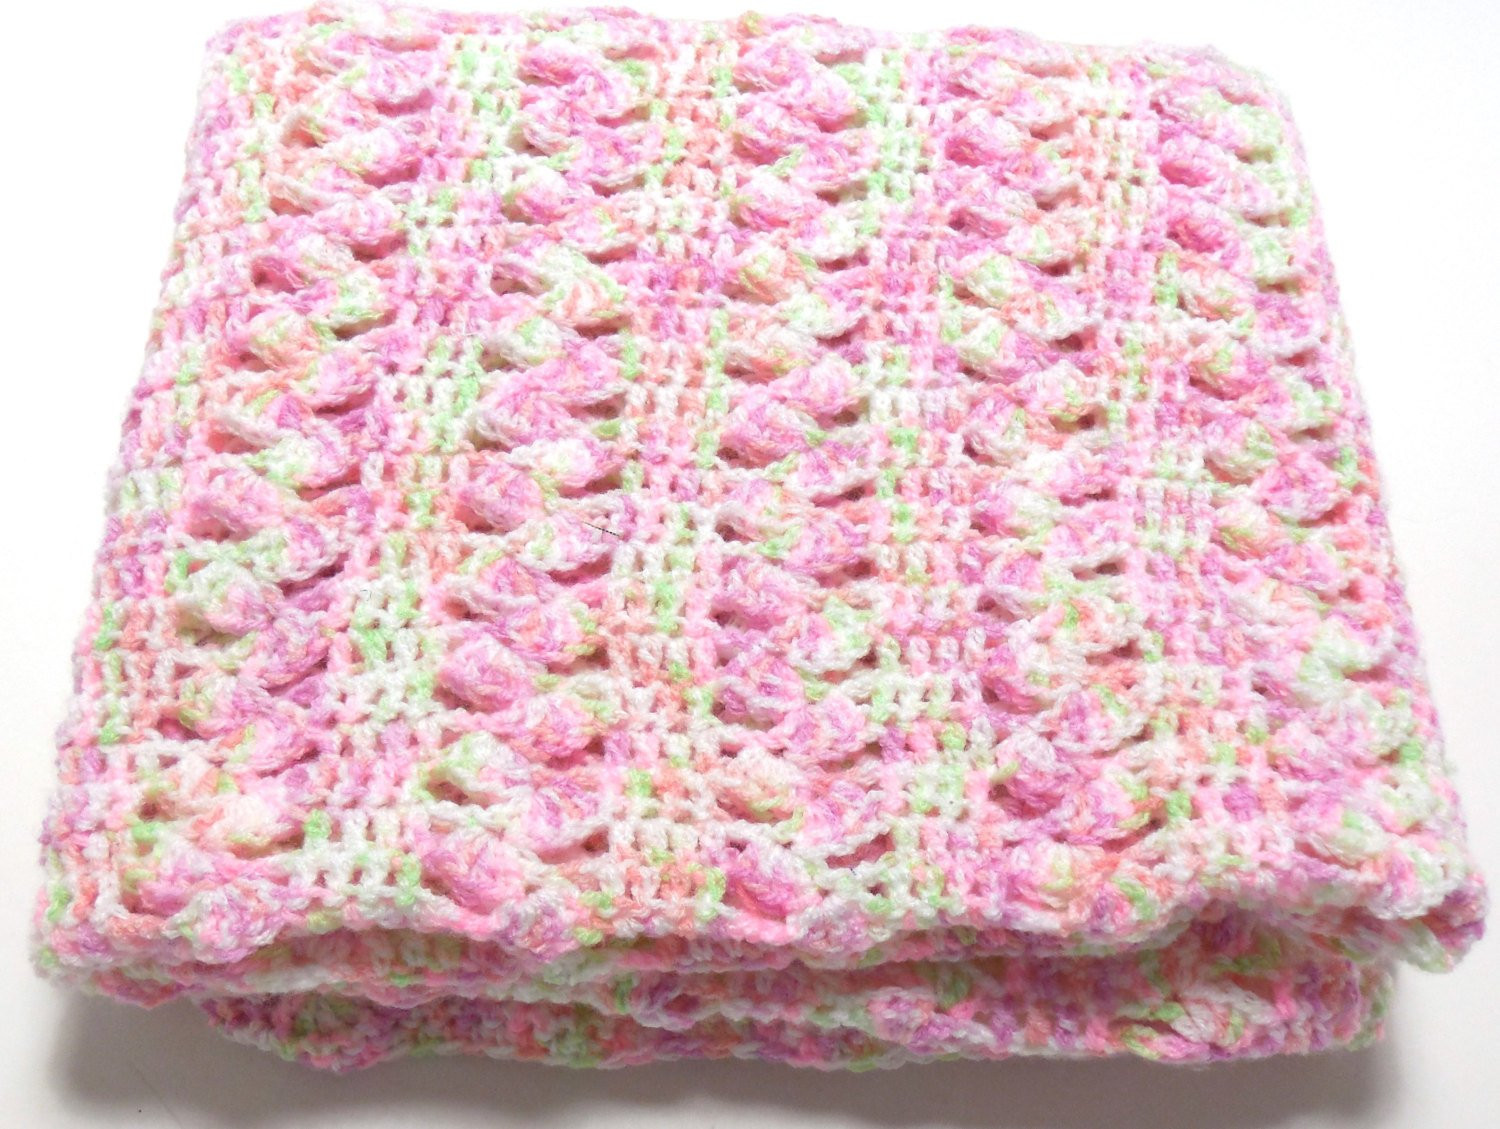 Baby Girl Crochet Patterns Awesome Crochet Baby Blanket Crochet Baby Girl Blanket Variegated Of Perfect 45 Models Baby Girl Crochet Patterns